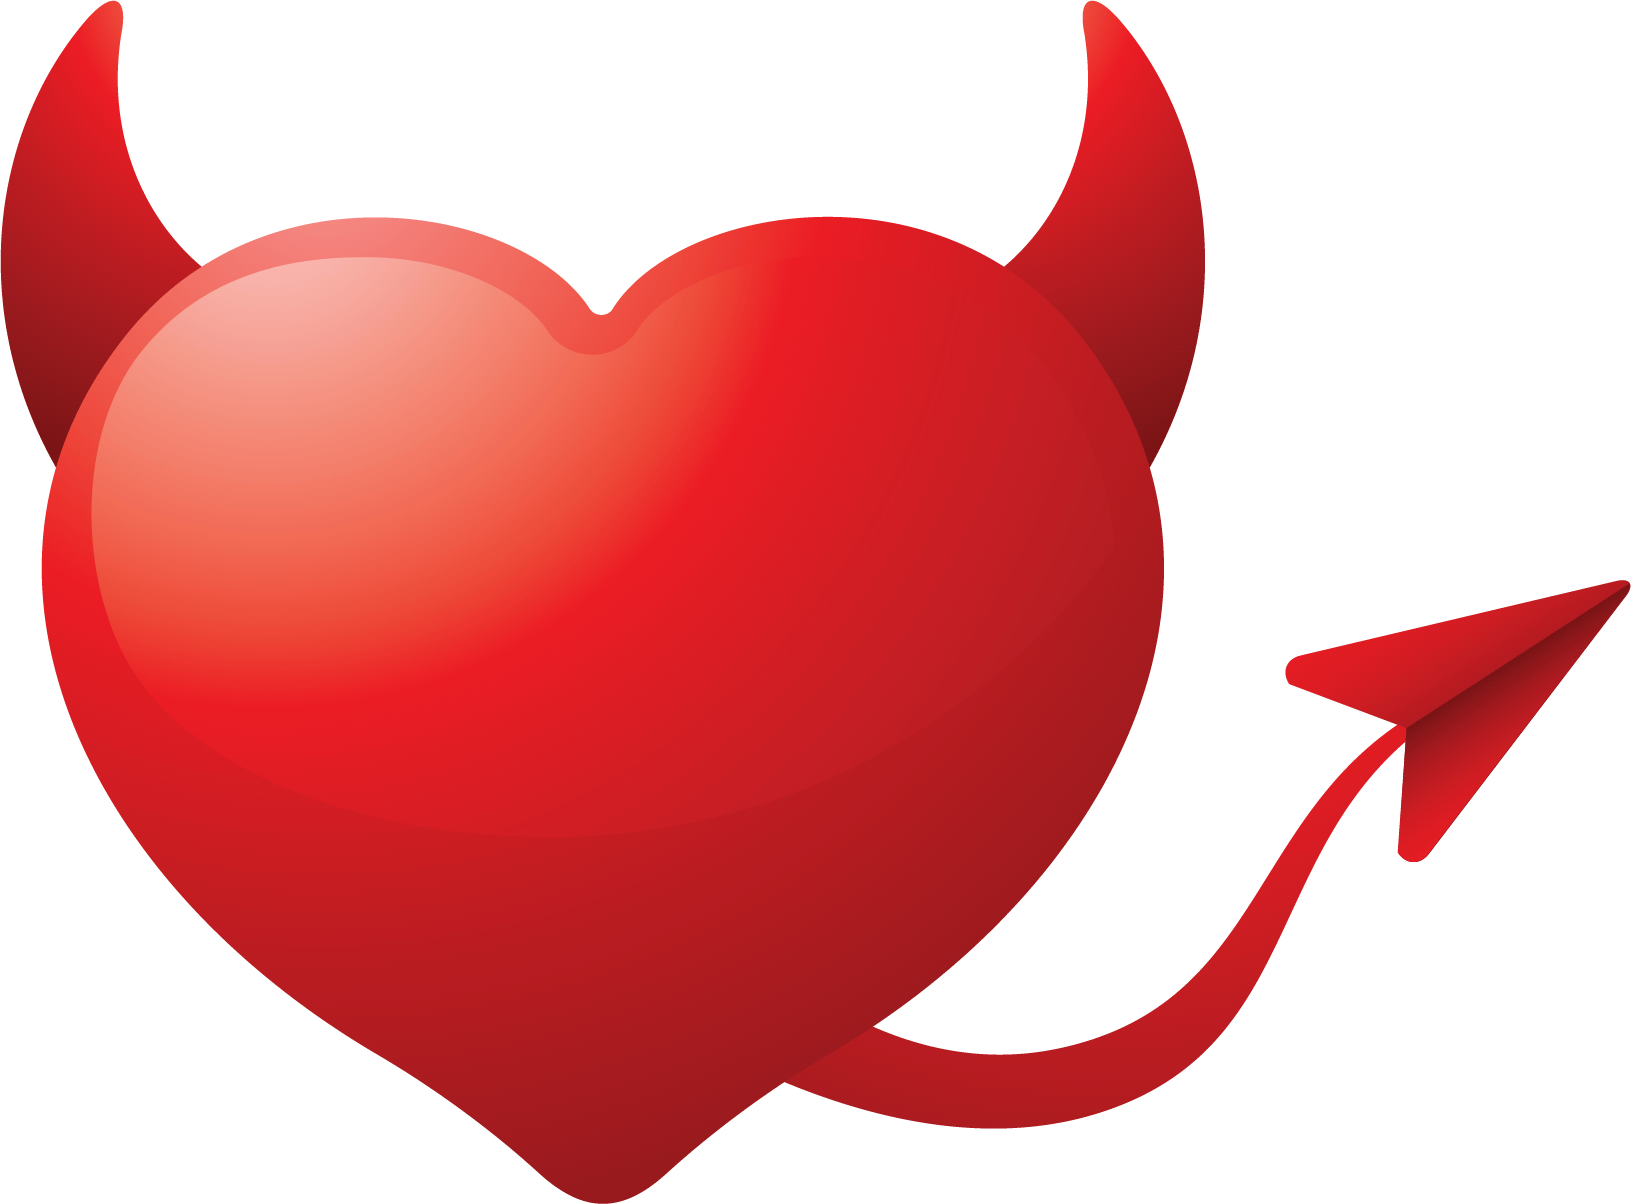 Images For Hearts ClipArt Best Fire heart, Heart